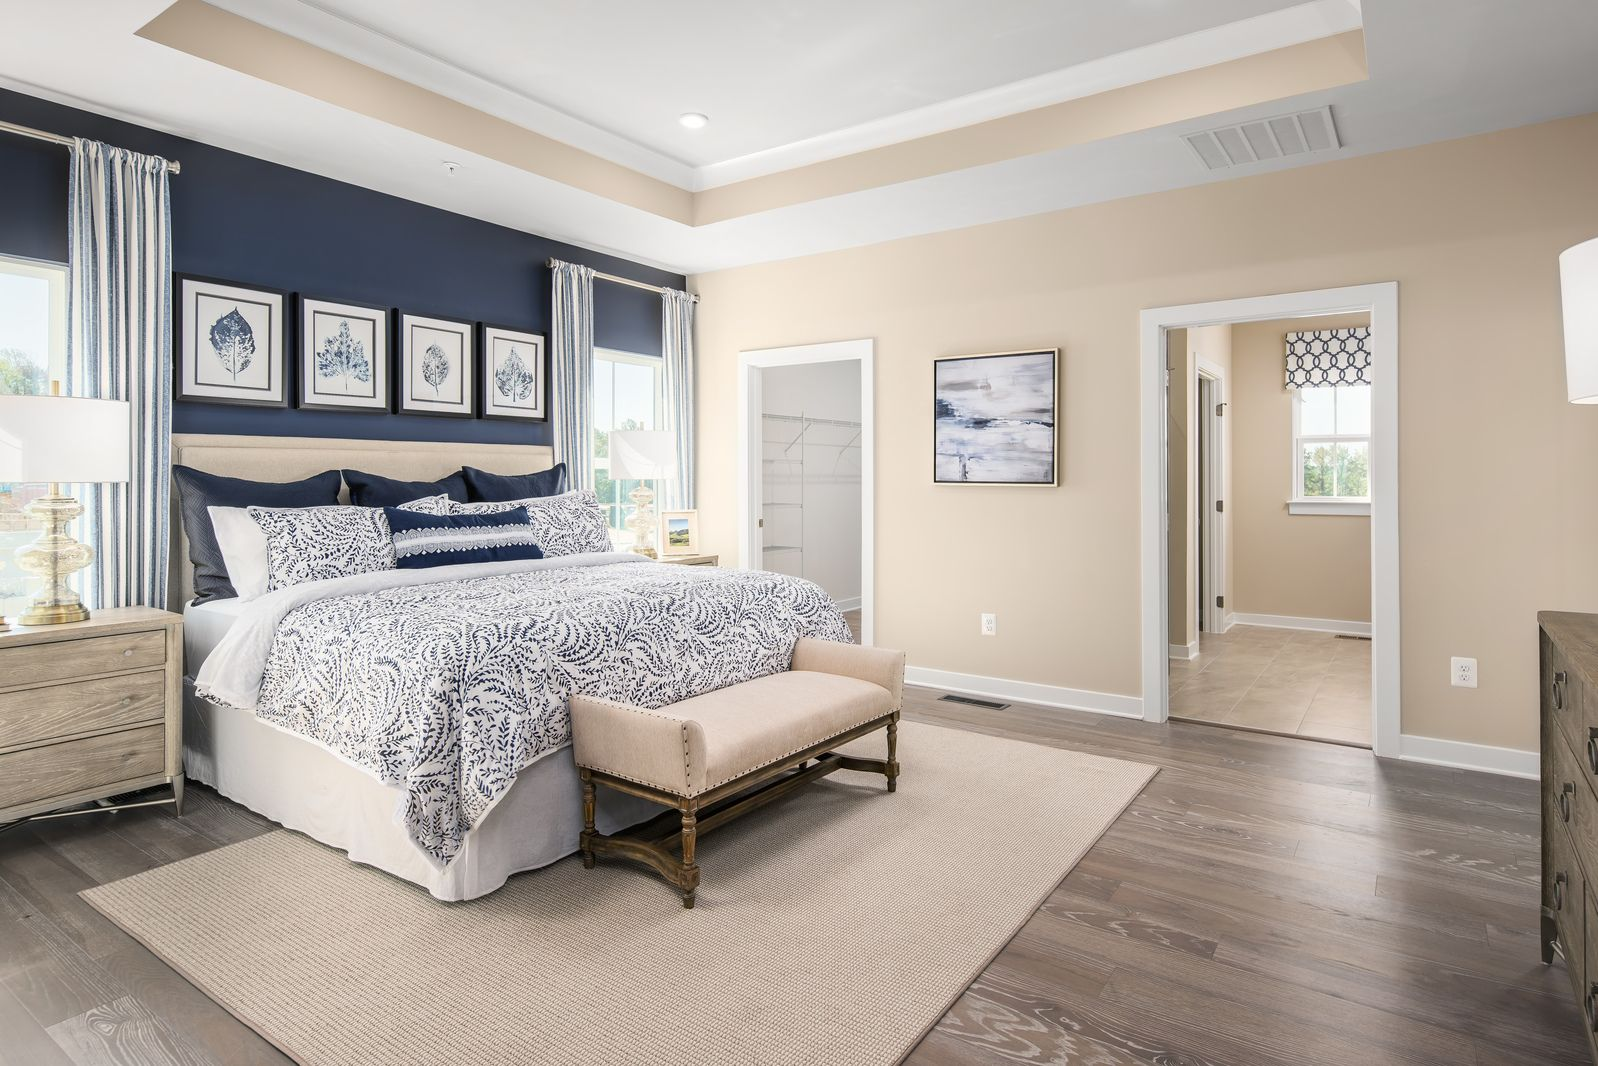 Bedroom featured in the Cumberland with Full Basement By Ryan Homes in Indianapolis, IN